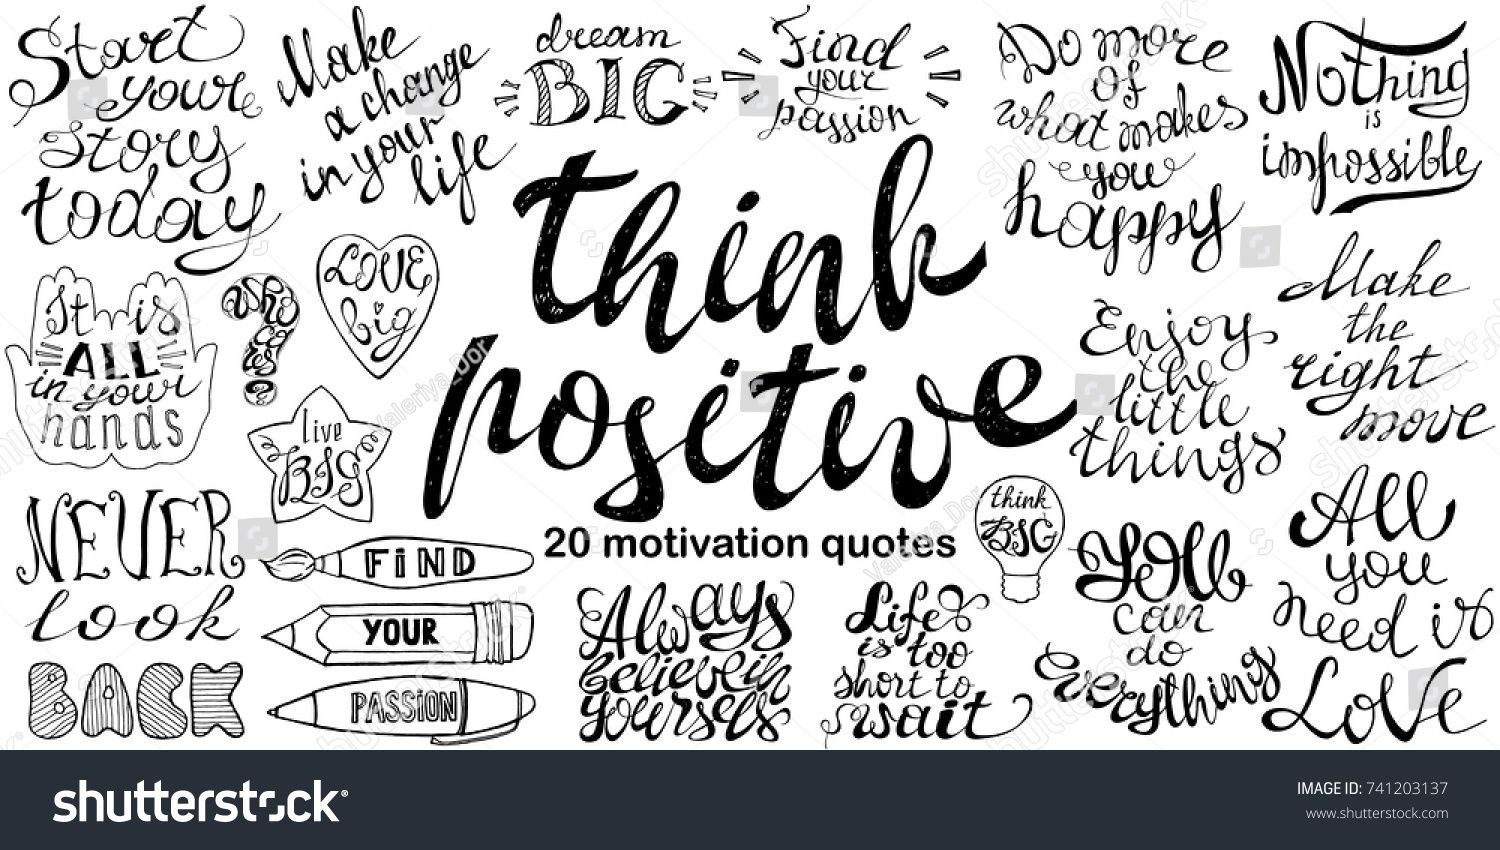 Inspirational Phrases Motivational Quotes Set Hand Drawn Inspirational Stock Vector